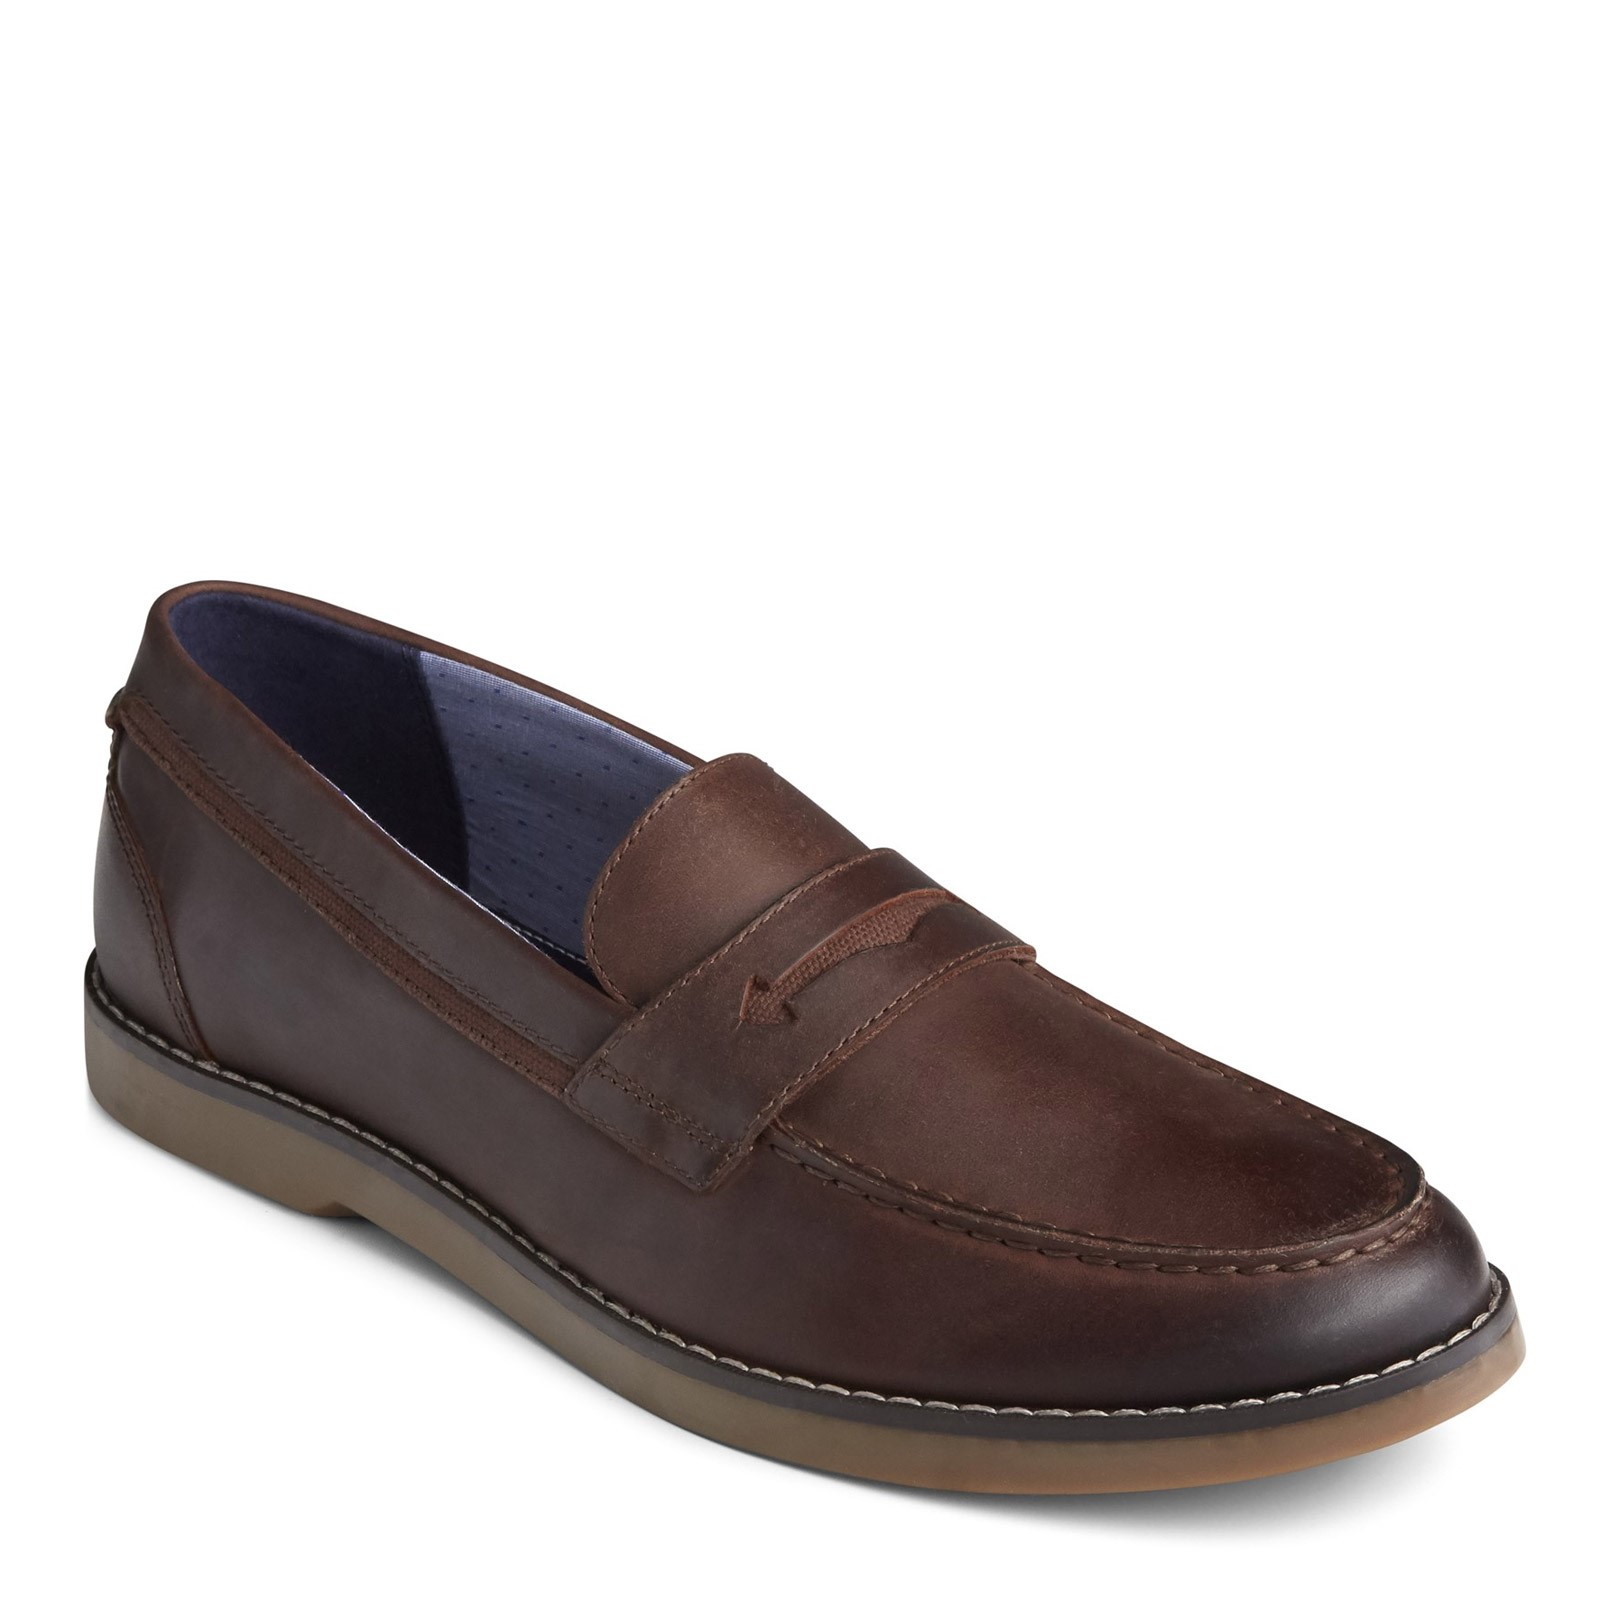 Men's Sperry, Newman Penny Loafer | Peltz Shoes